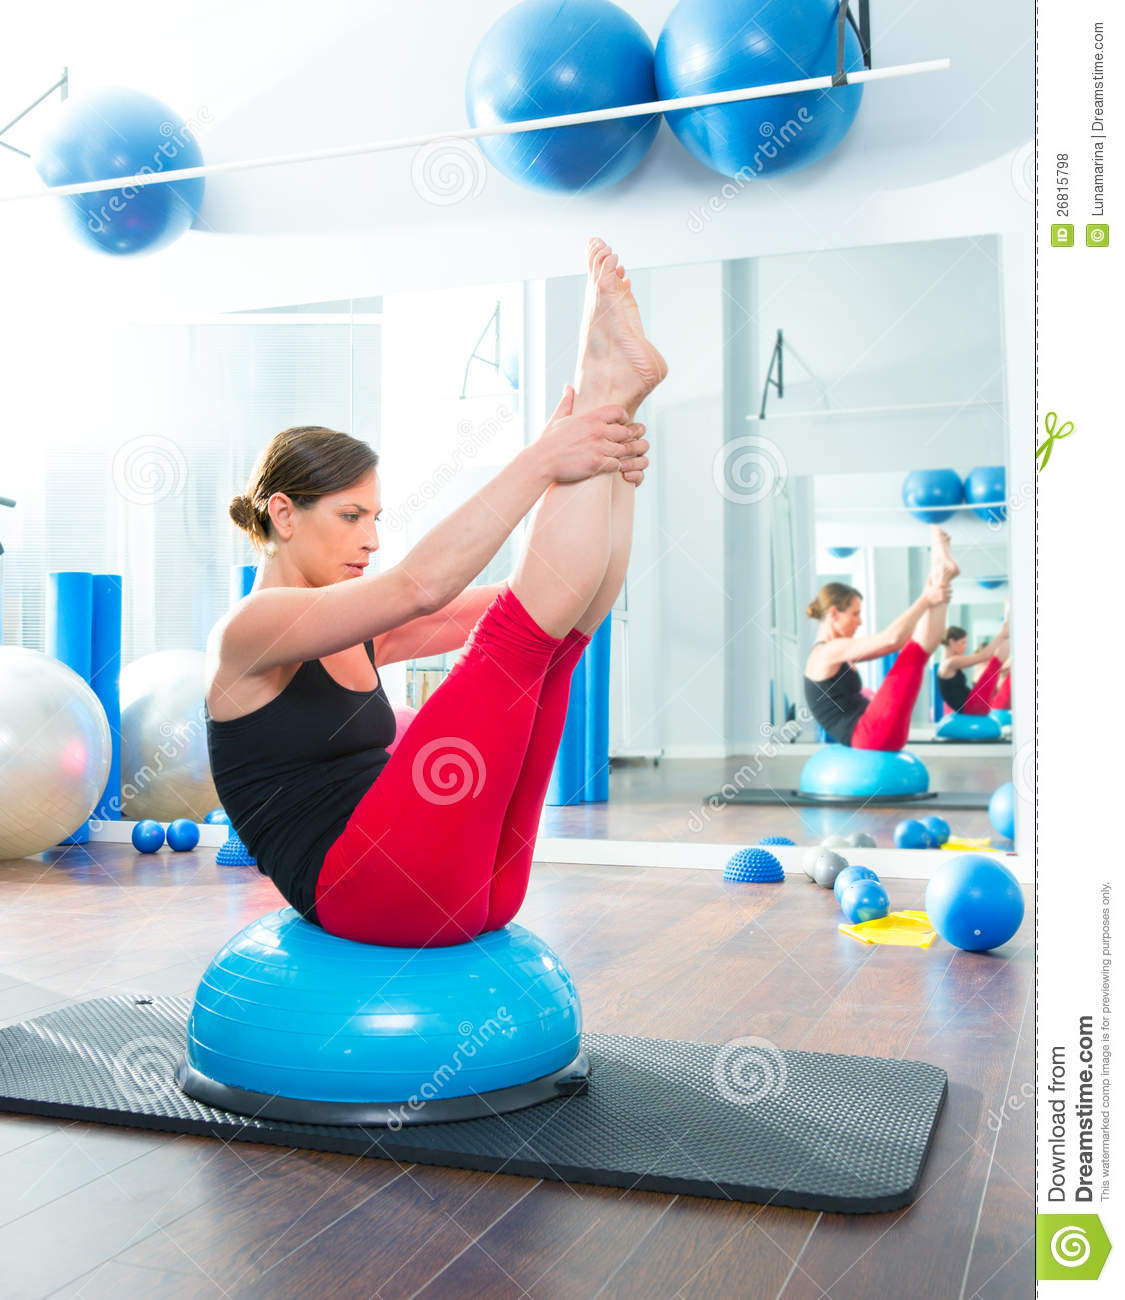 Bosu Ball Exercises For Athletes: Bosu Ball For Fitness Instructor Woman In Aerobics Royalty